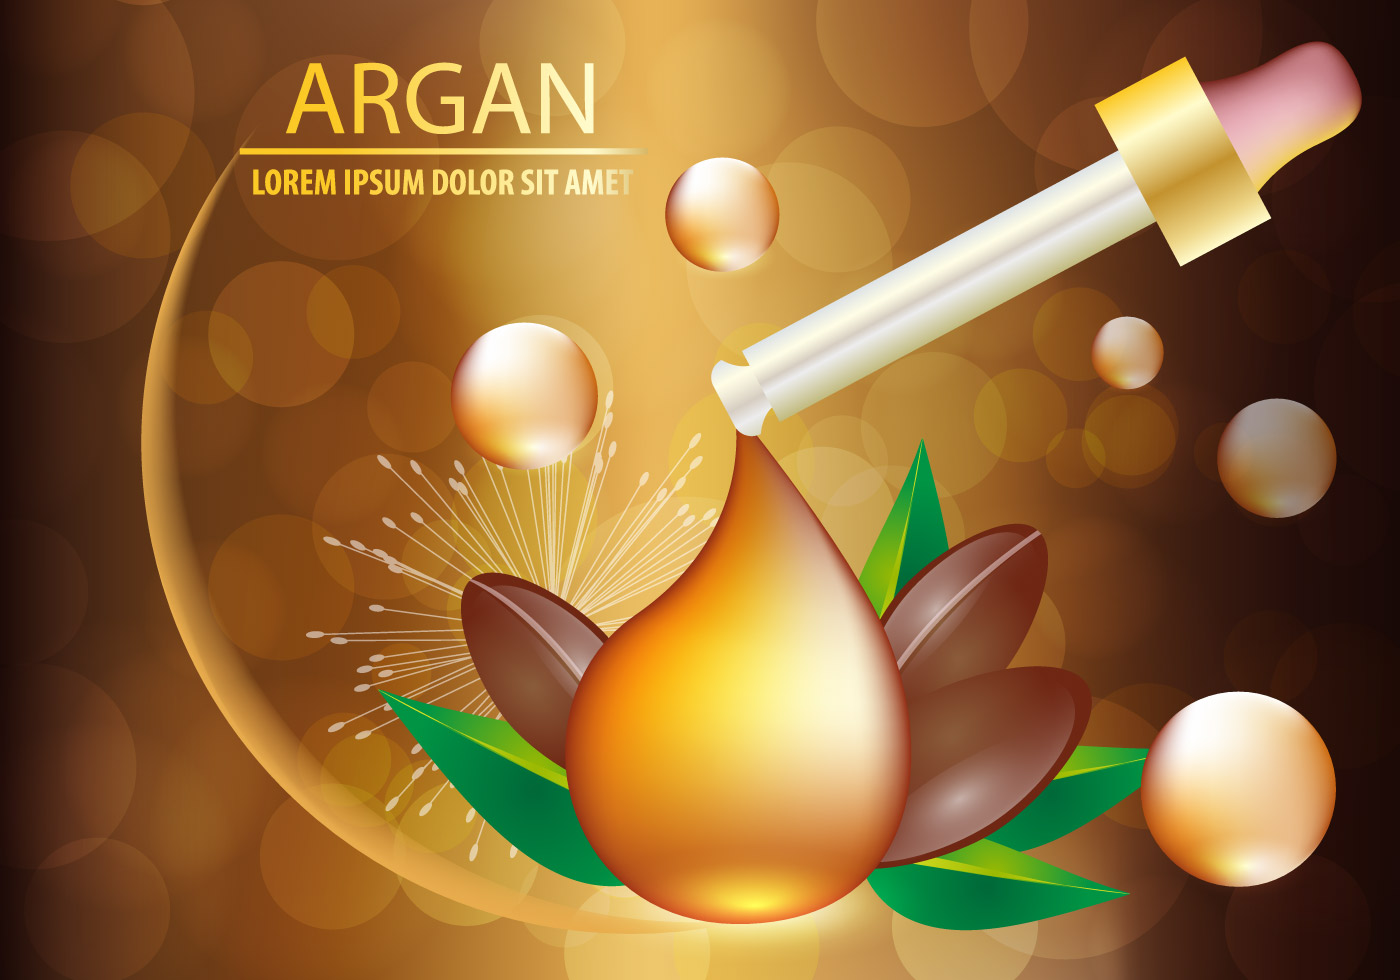 Argan Oil Serum And Background Concept Skin Care Cosmetic Download Free Vectors Clipart Graphics Vector Art